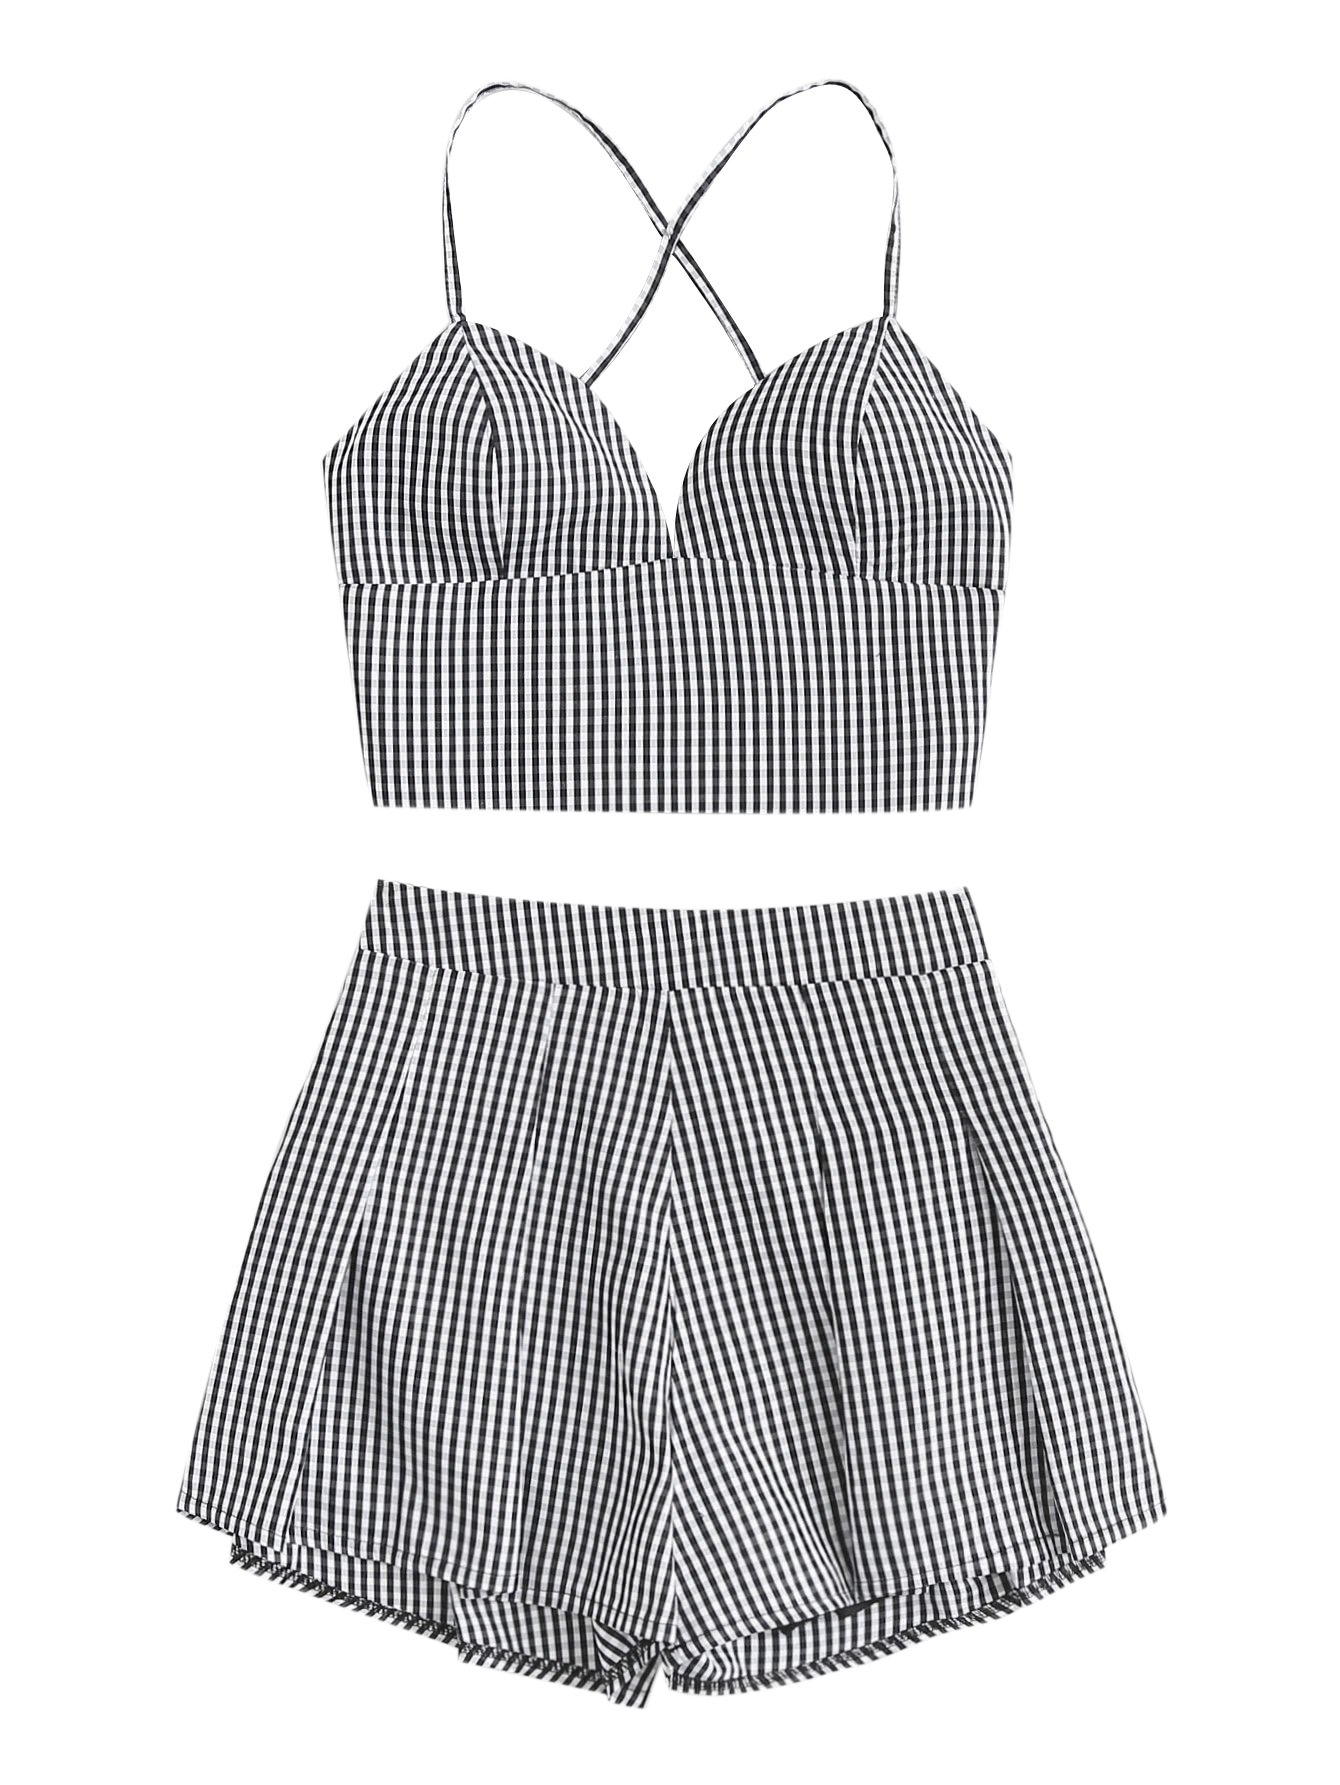 MakeMeChic Women's 2 Piece Outfit Summer Striped V Neck Crop Cami Top with Shorts Black-1 S